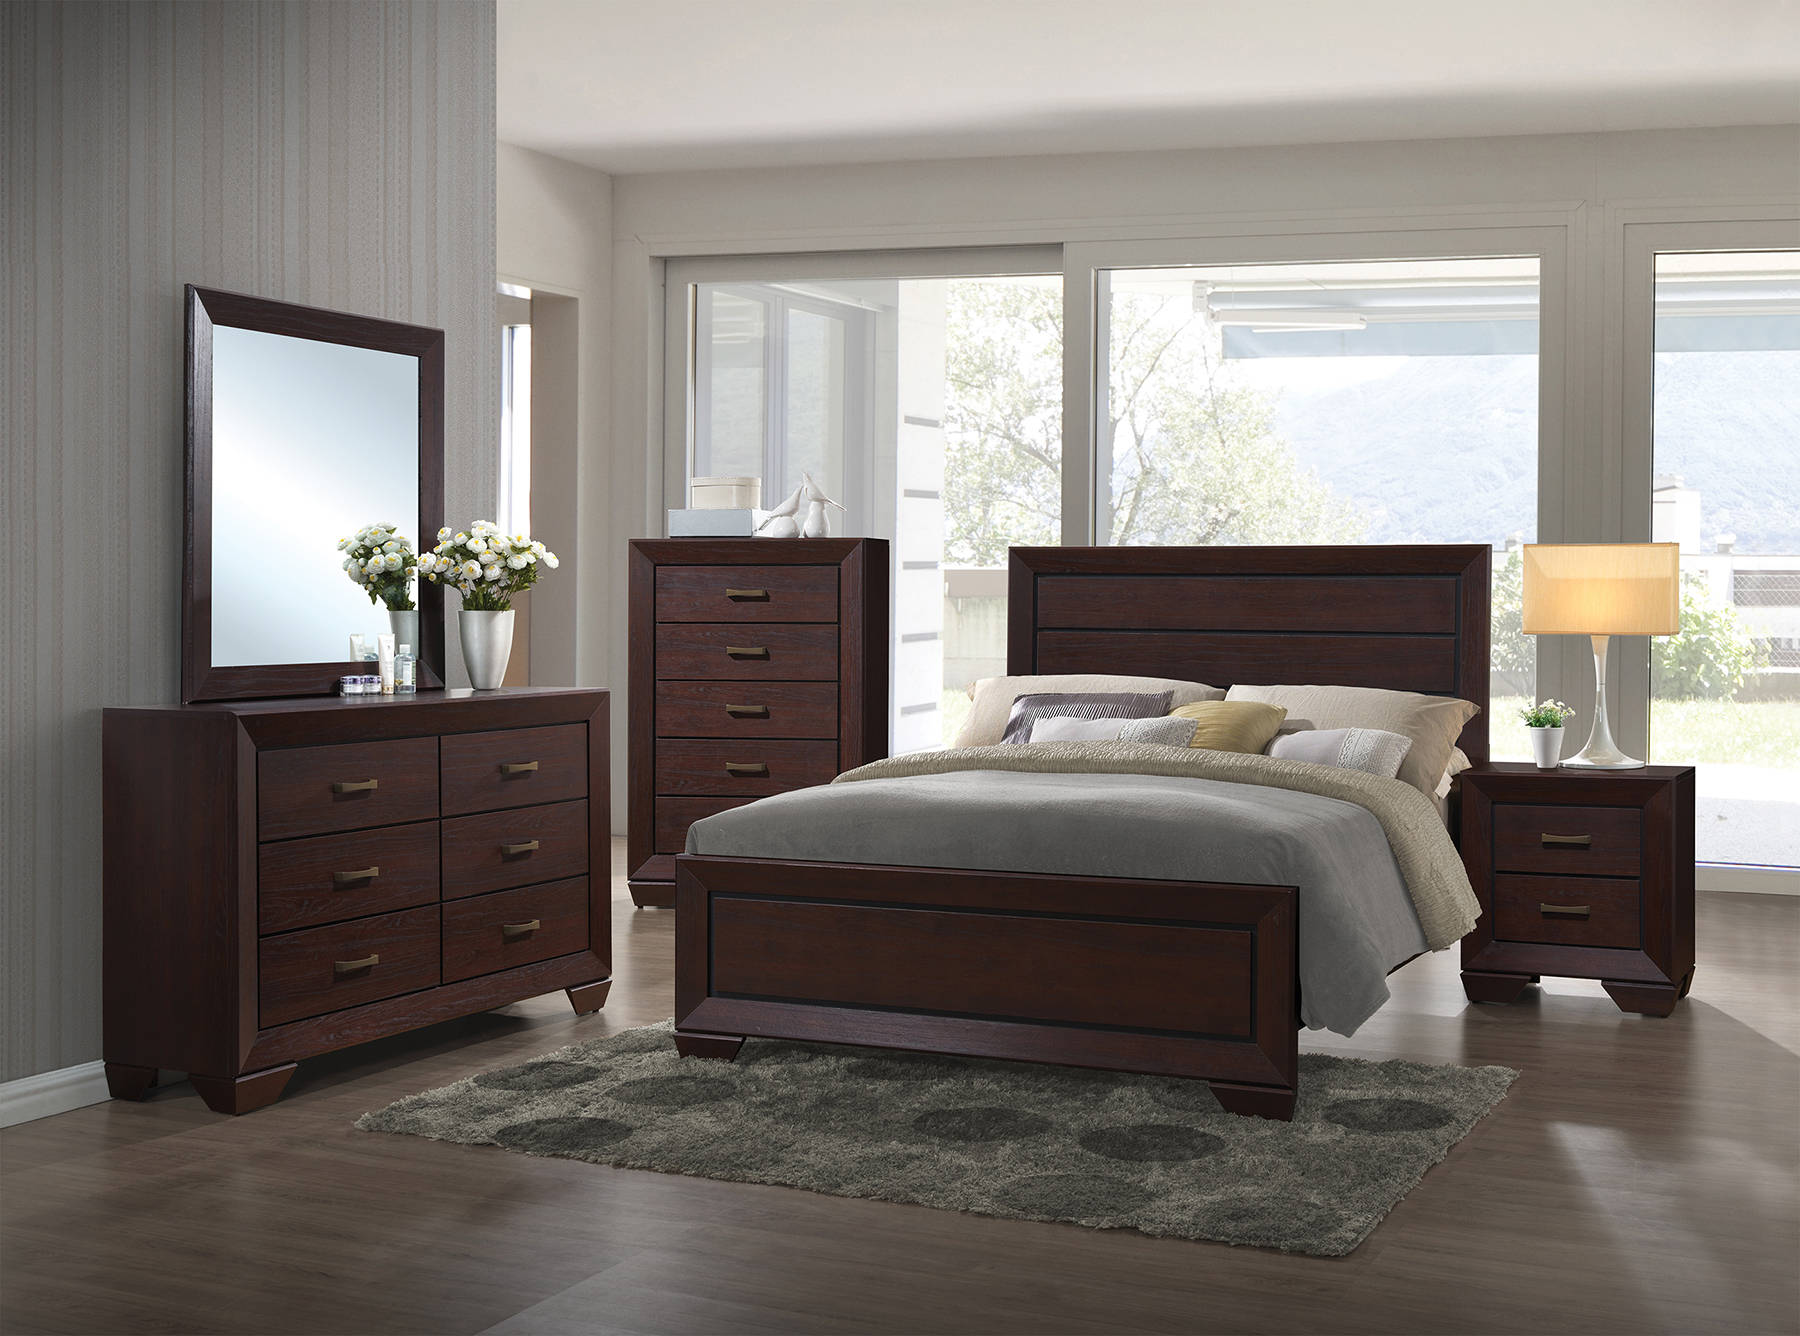 Fenbrook Transitional Dark Cocoa Hardwood Master Bedroom Set Bedrooms The Classy Home Best